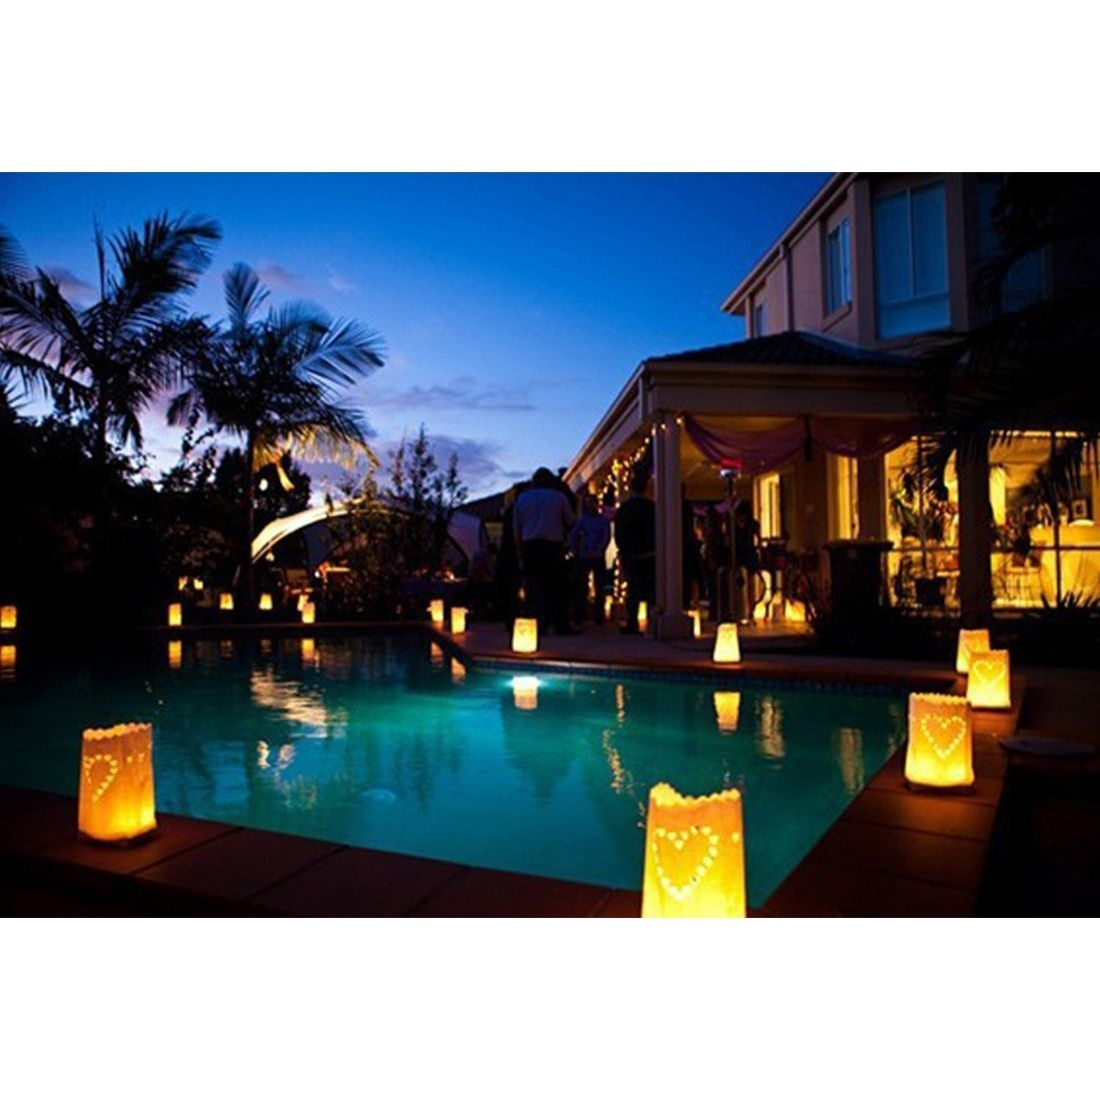 30 Pcs Tea Light Holder Luminous Paper Lantern Candle Bag For Party for Outdoor Pool Lanterns (Image 2 of 20)